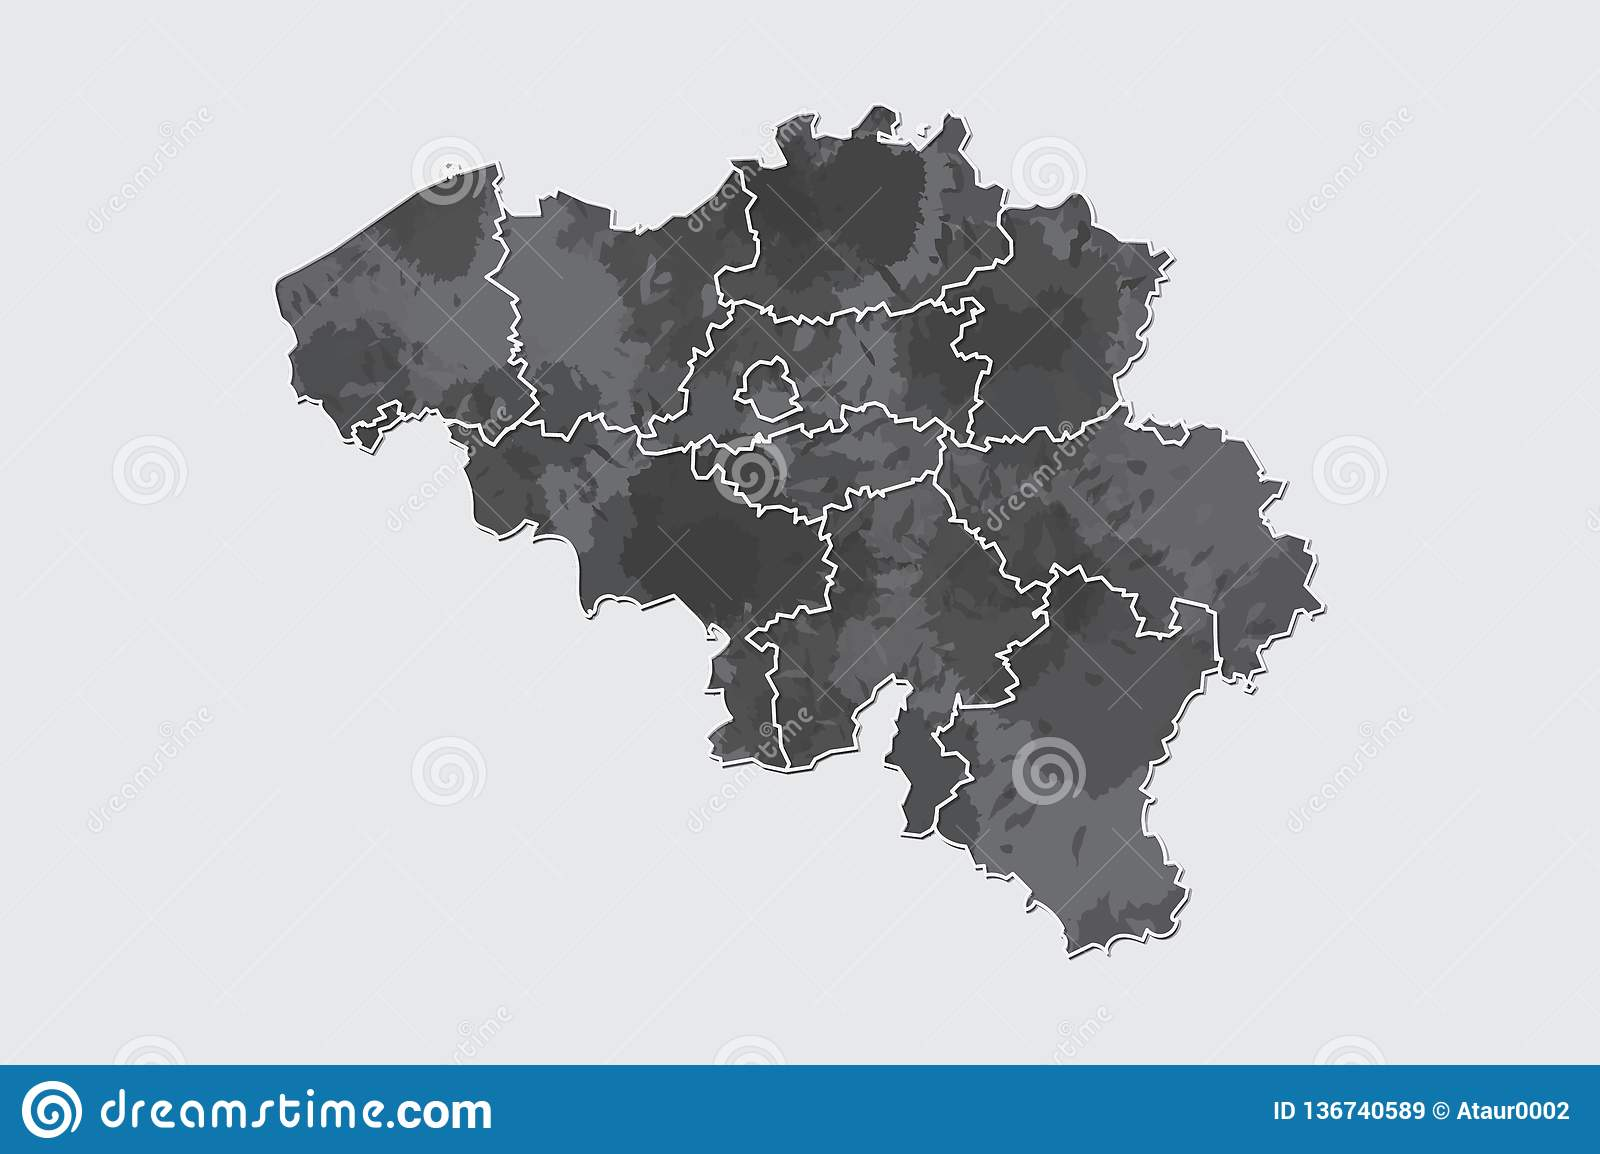 Belgium watercolor map vector illustration of black color with border lines of different regions or provinces on light background